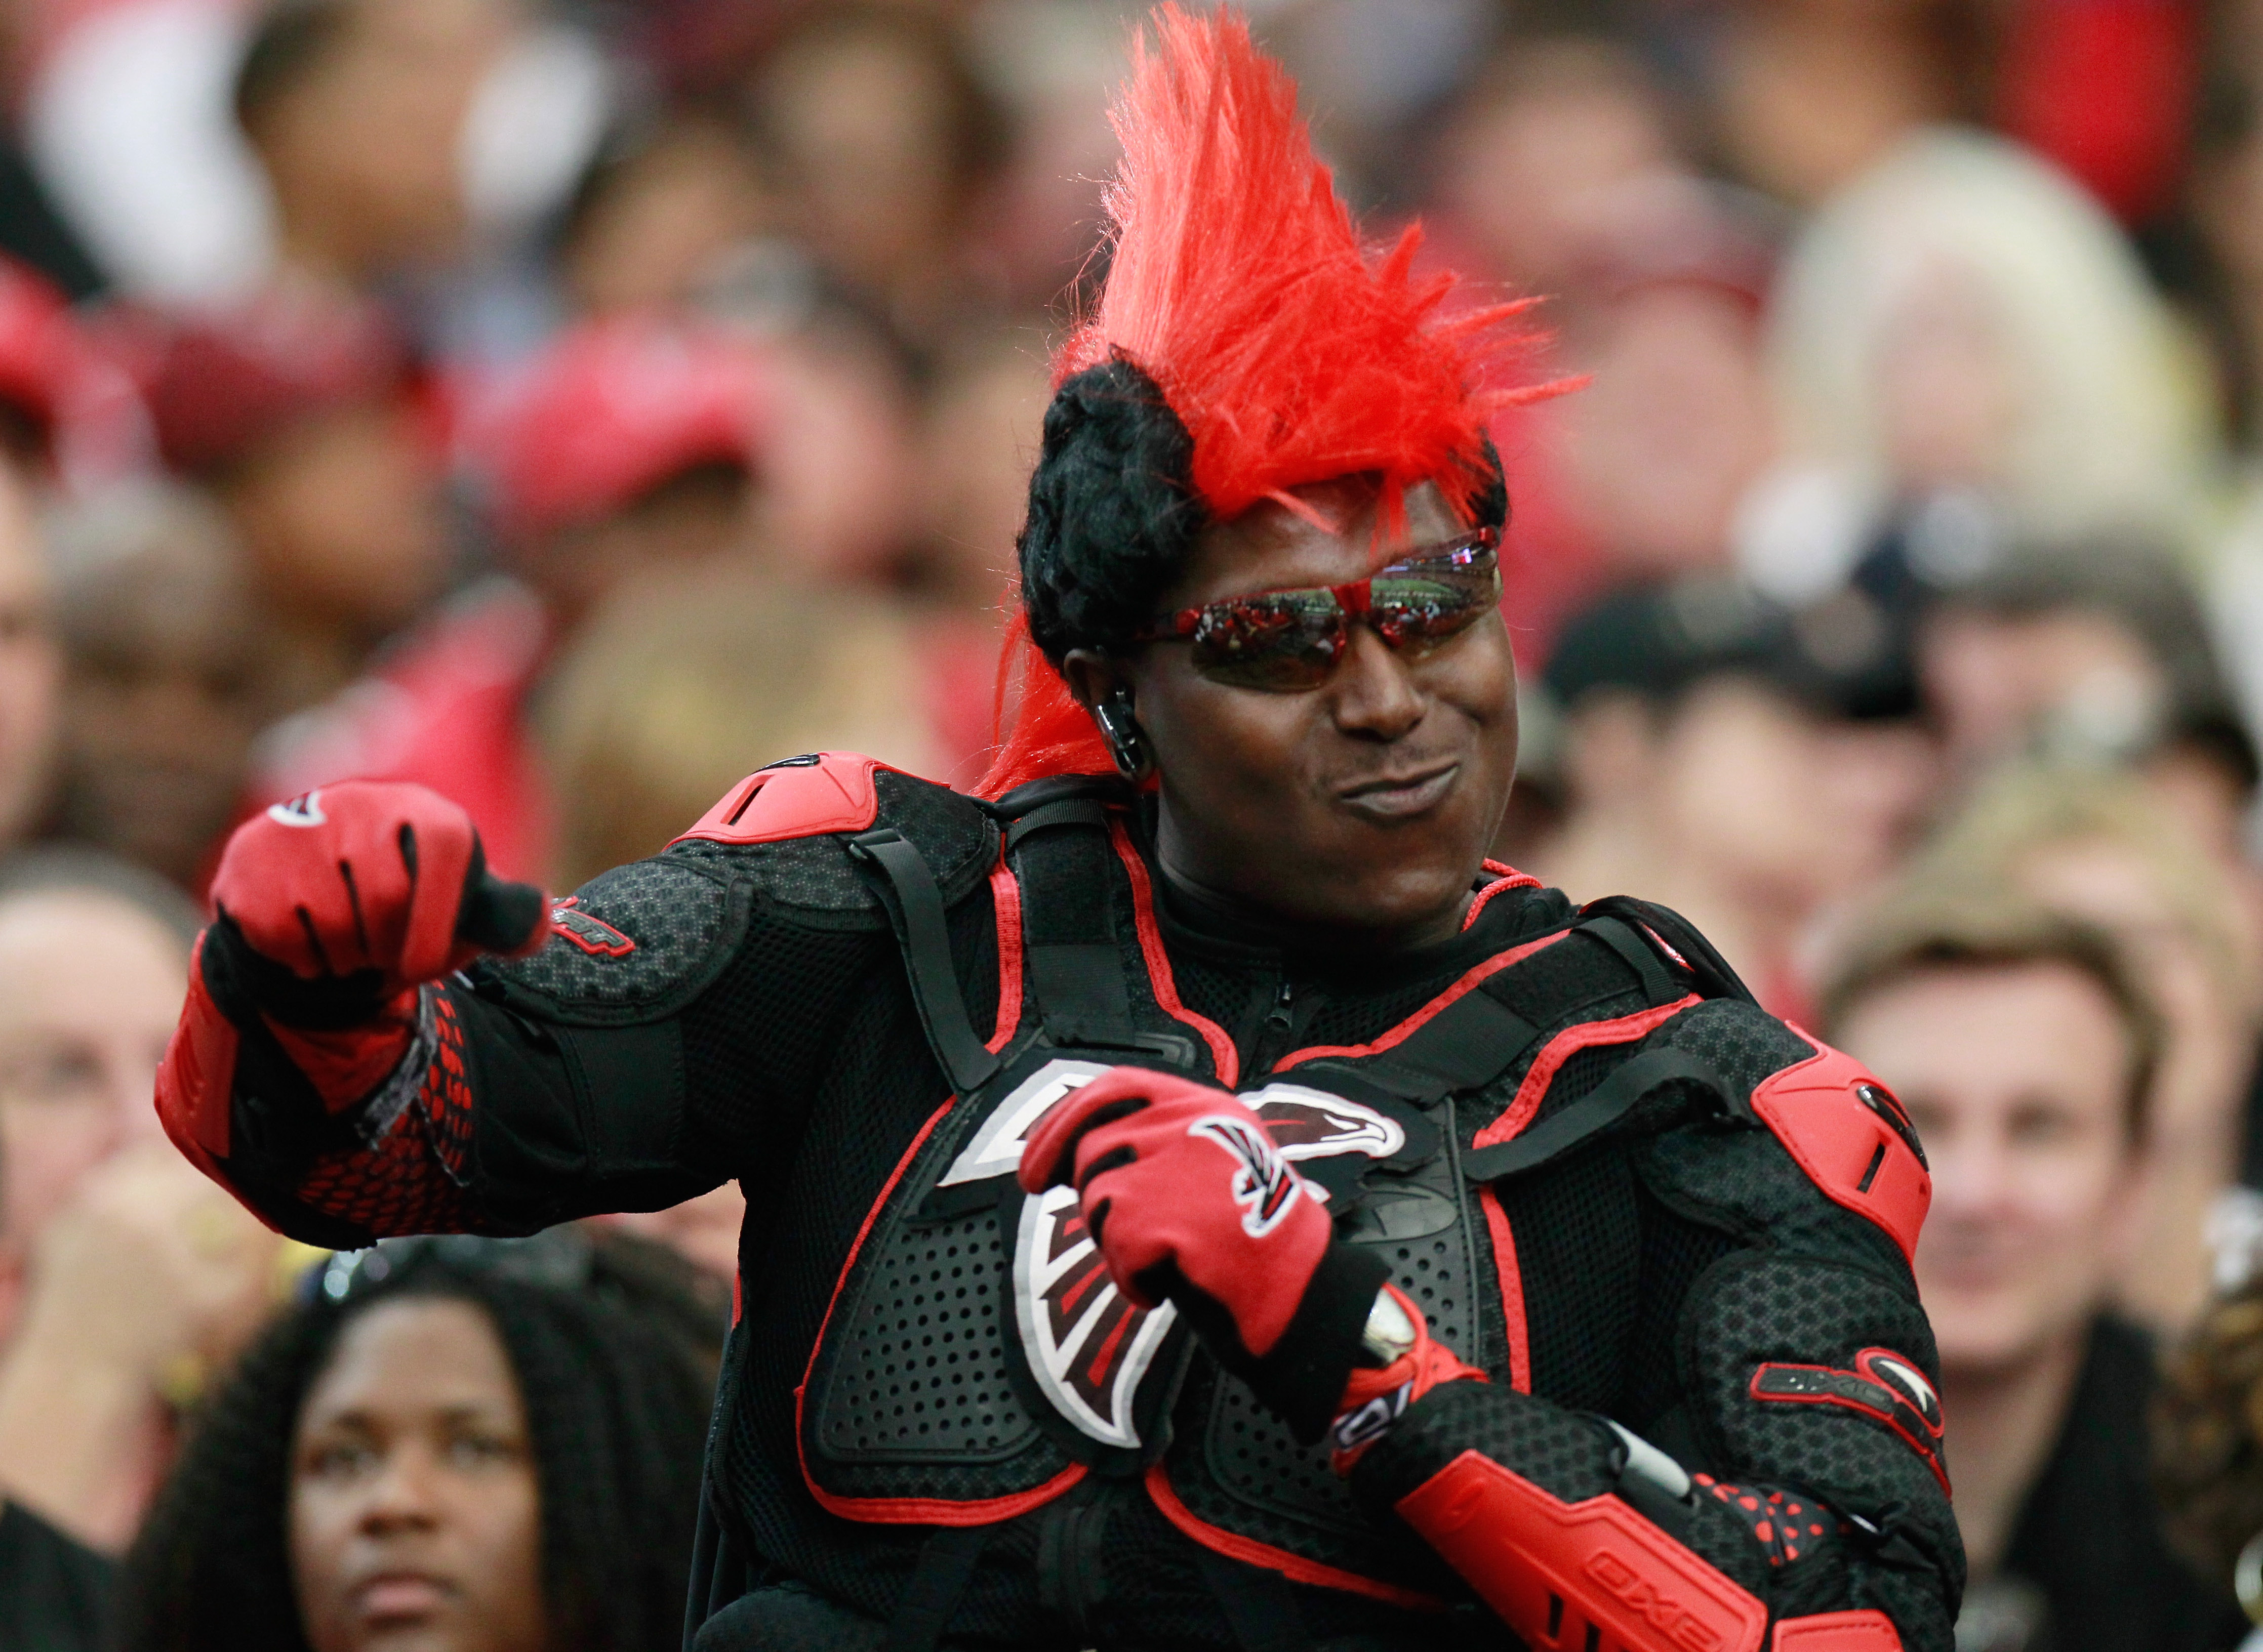 ATLANTA - SEPTEMBER 19:  A fan of the Atlanta Falcons cheers during the game against the Arizona Cardinals at Georgia Dome on September 19, 2010 in Atlanta, Georgia.  (Photo by Kevin C. Cox/Getty Images)